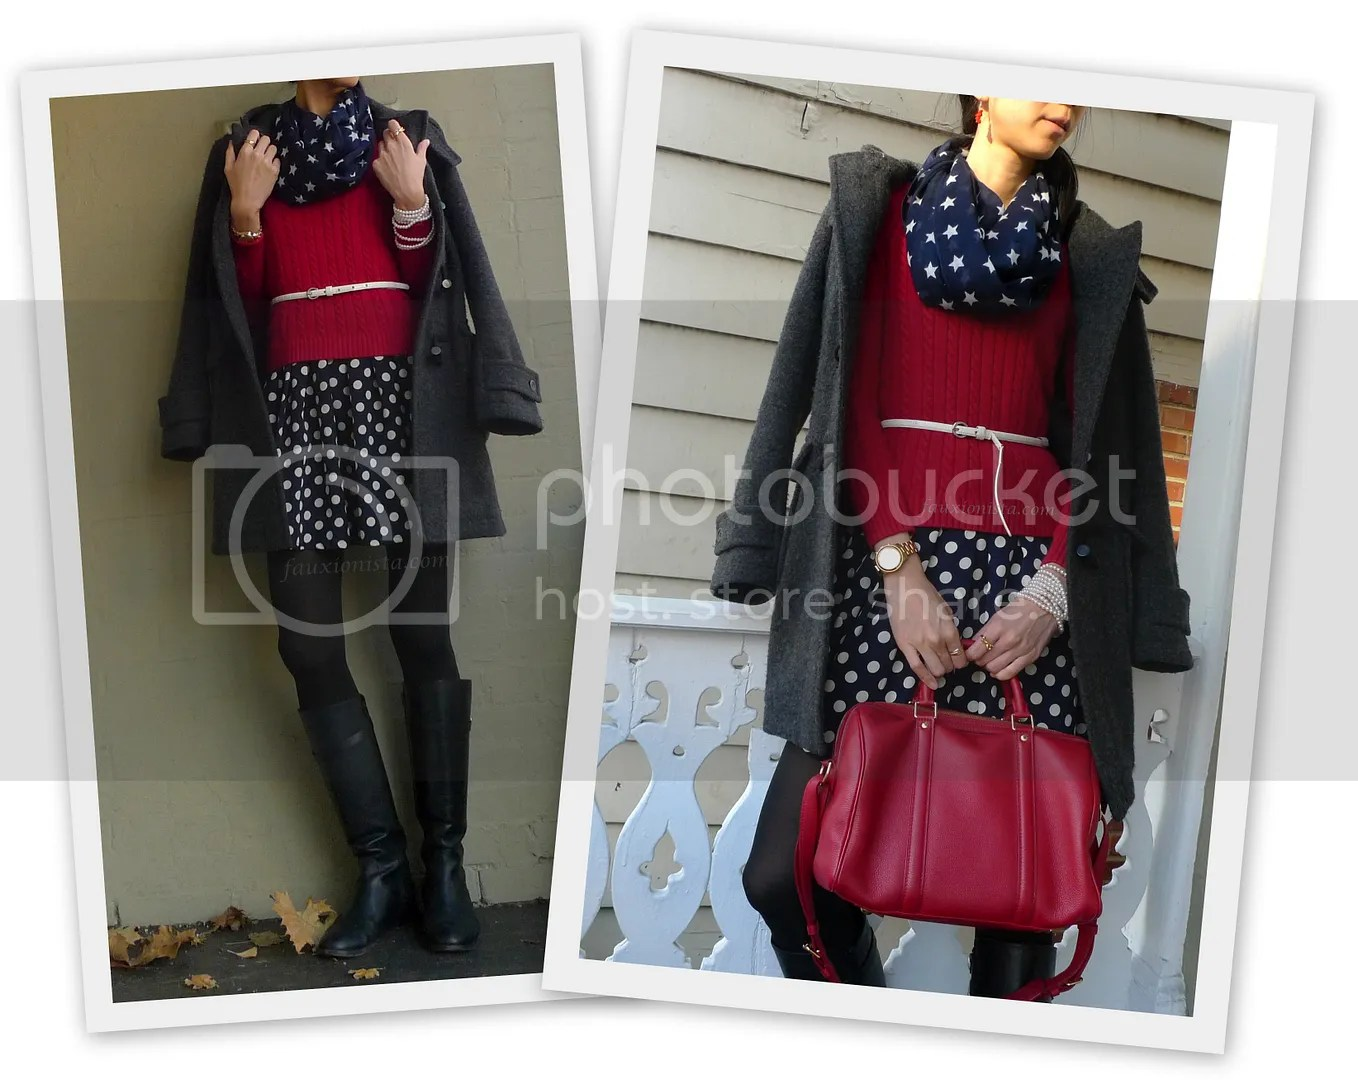 Fauxionable Outfit - Stars & Polka Dots Navy & Red